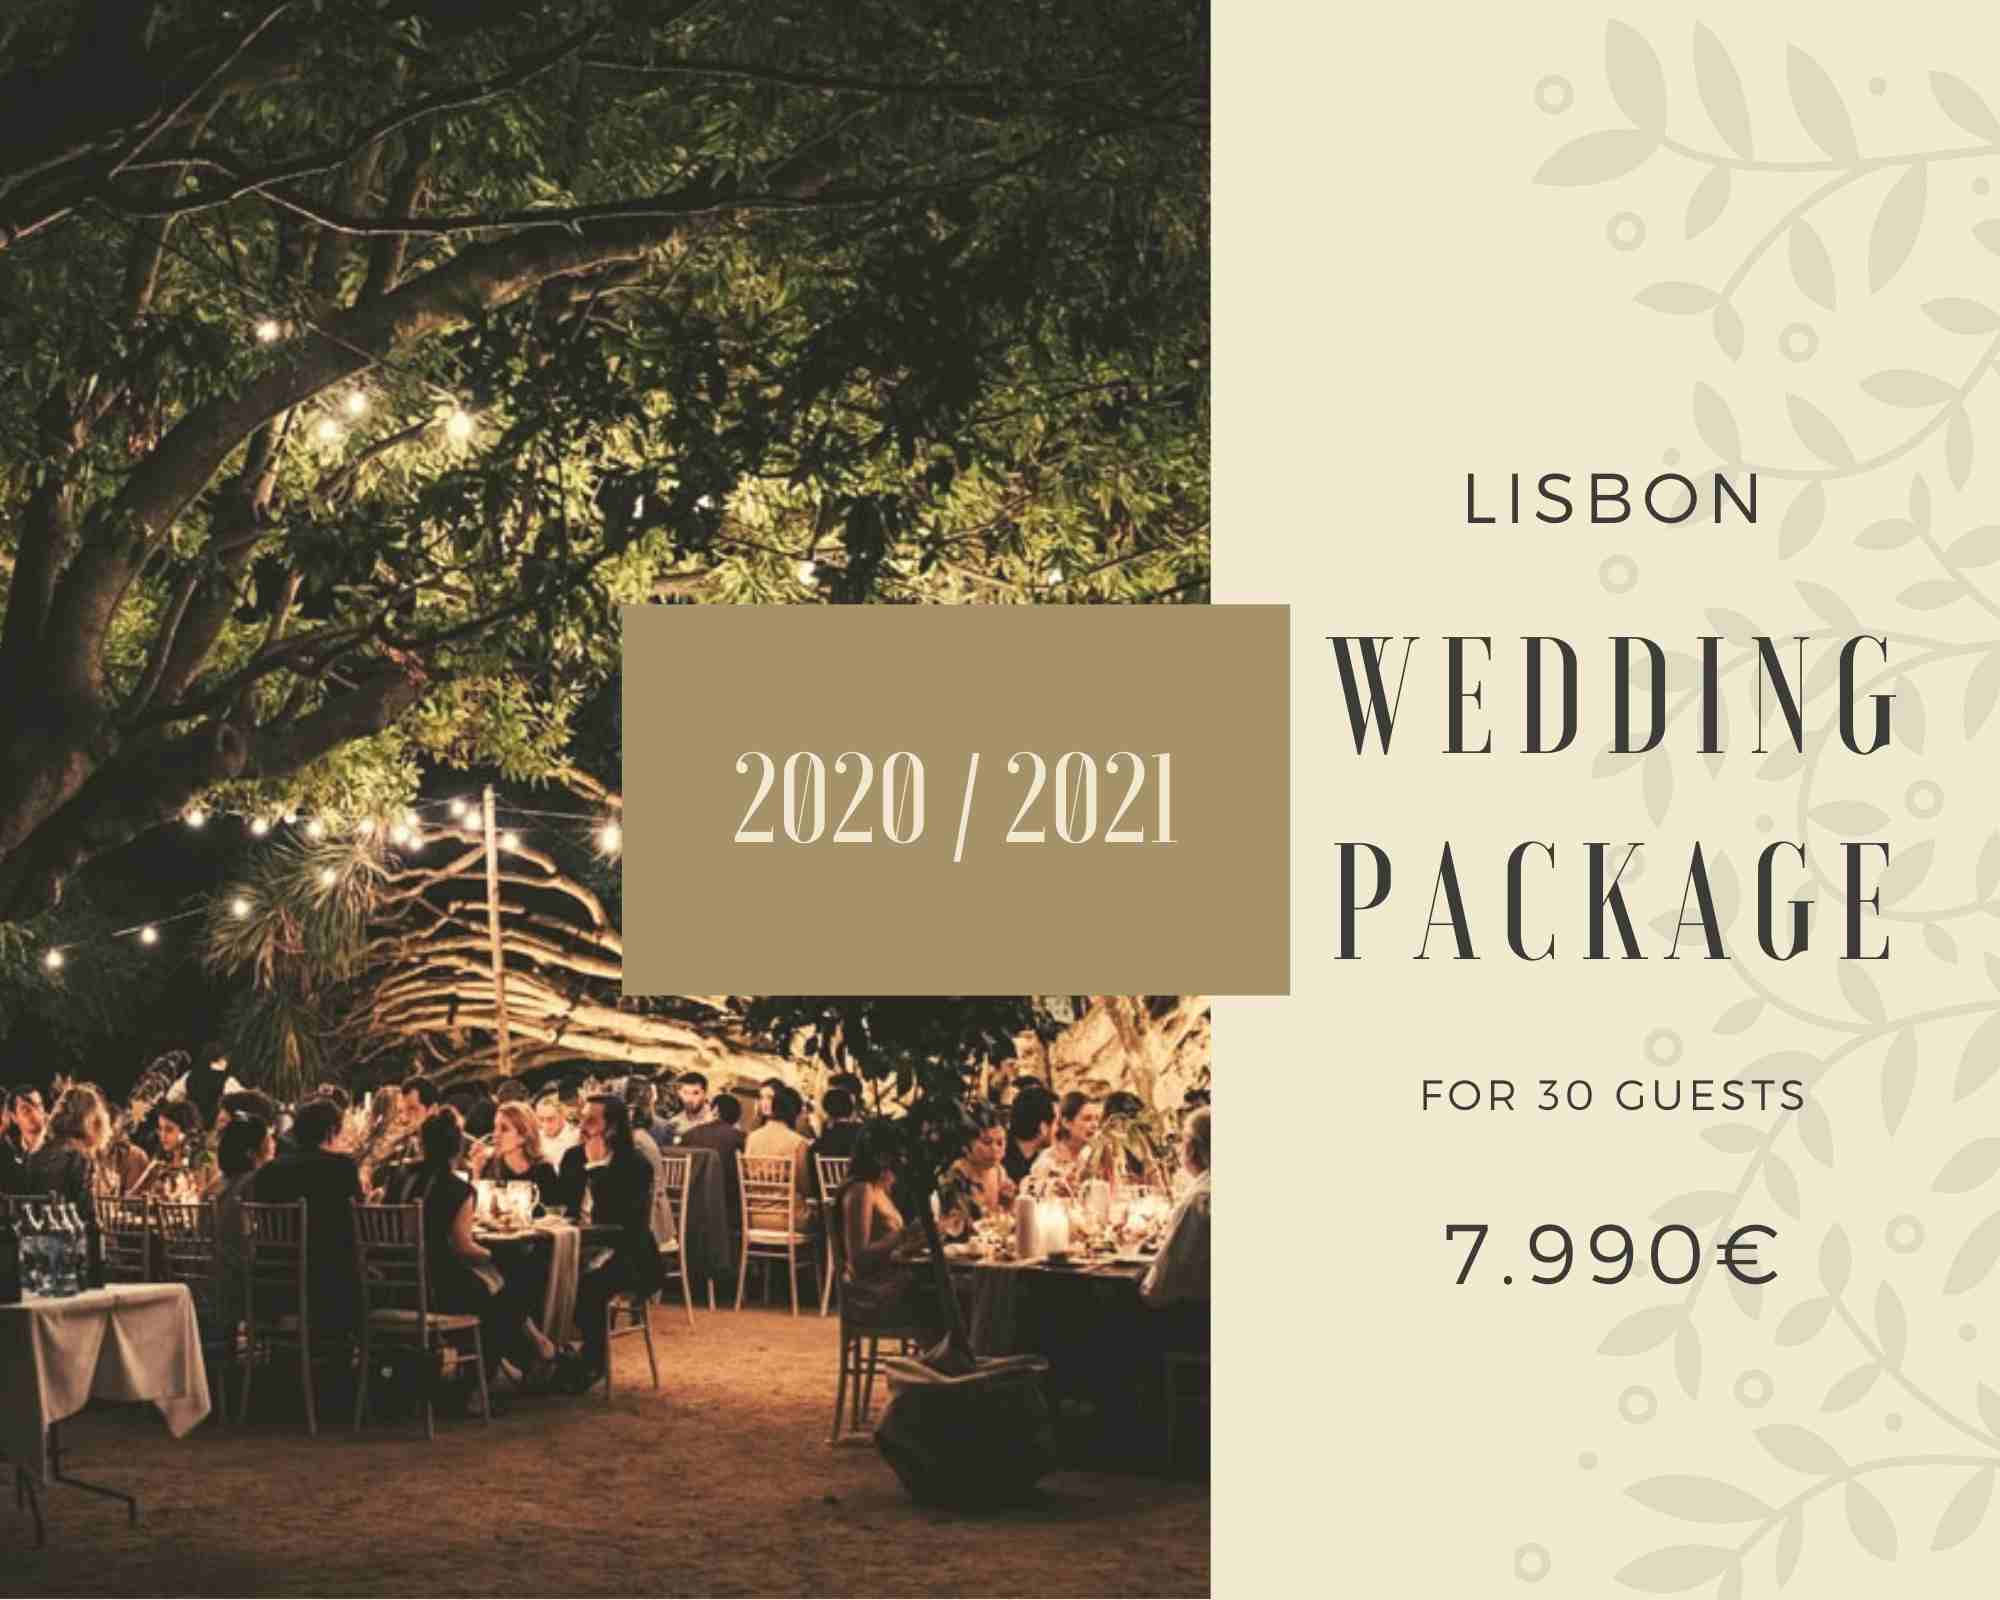 Lisbon Wedding Package 2021